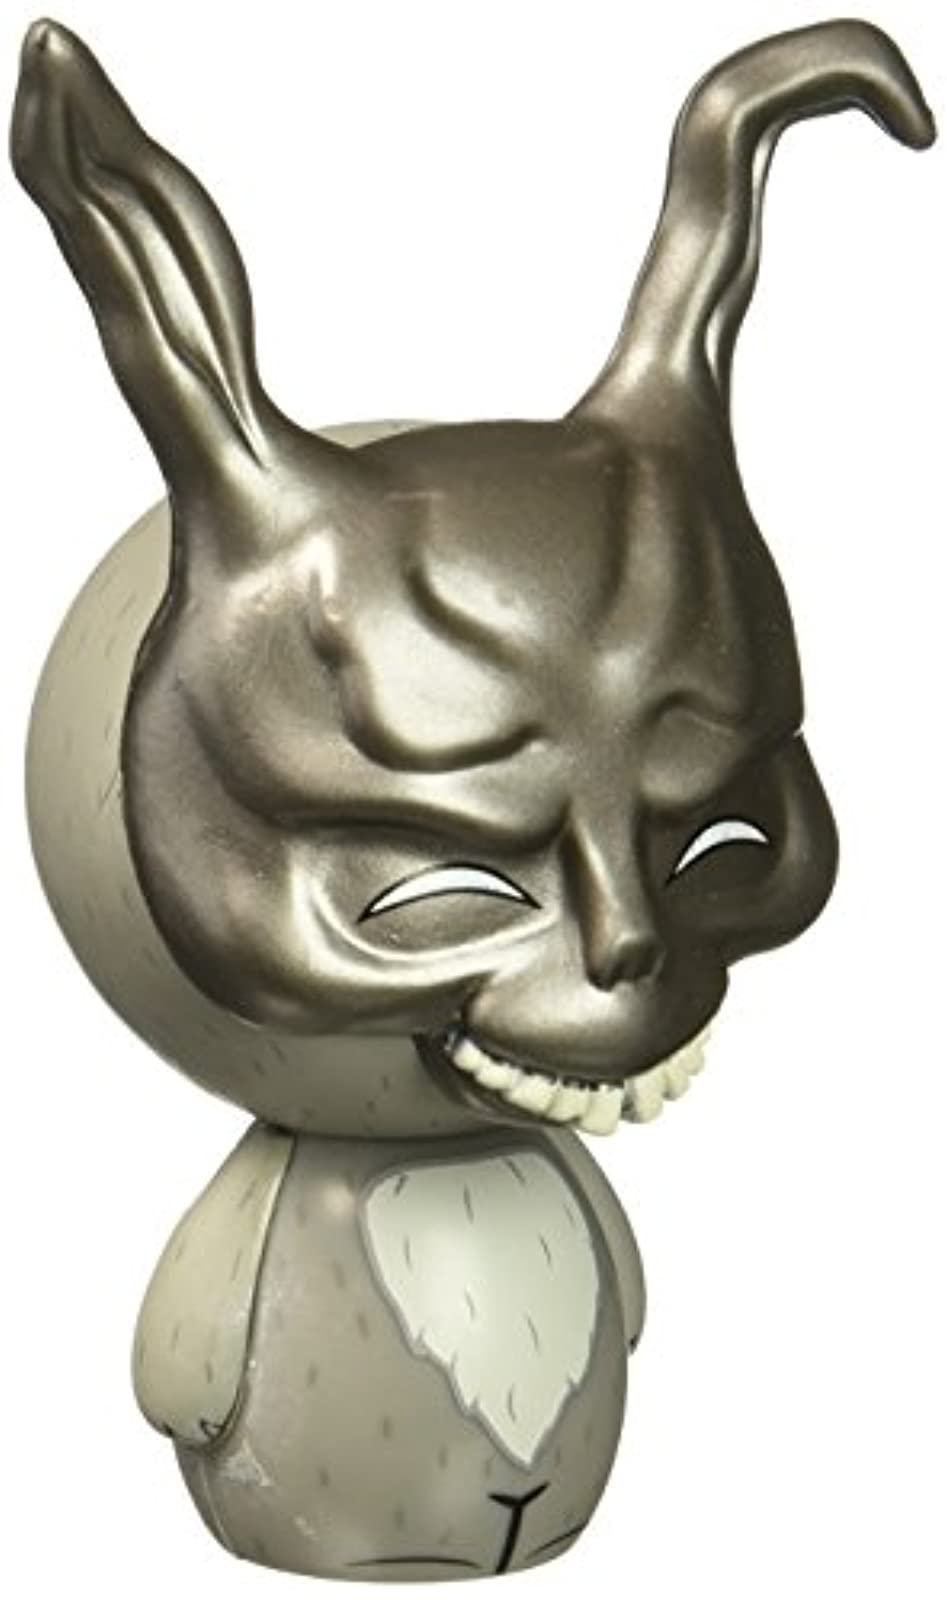 Funko Dorbz Donnie Darko Frank Style May Vary Action Figure Toy